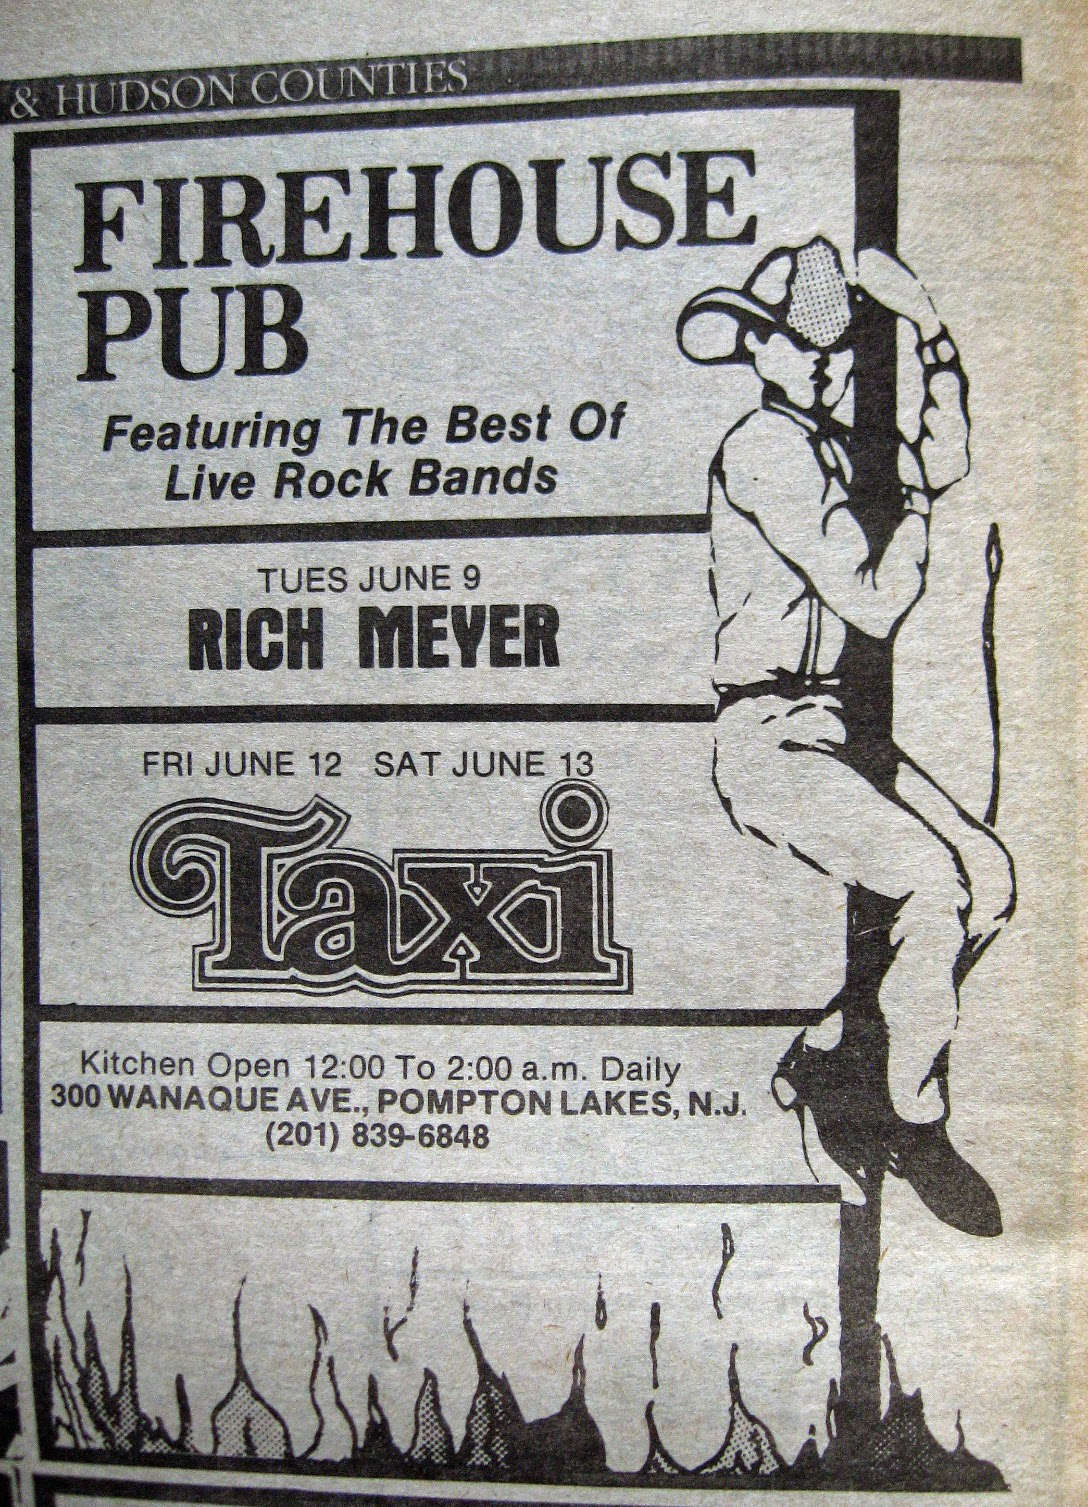 Firehouse Pub band line up 1981